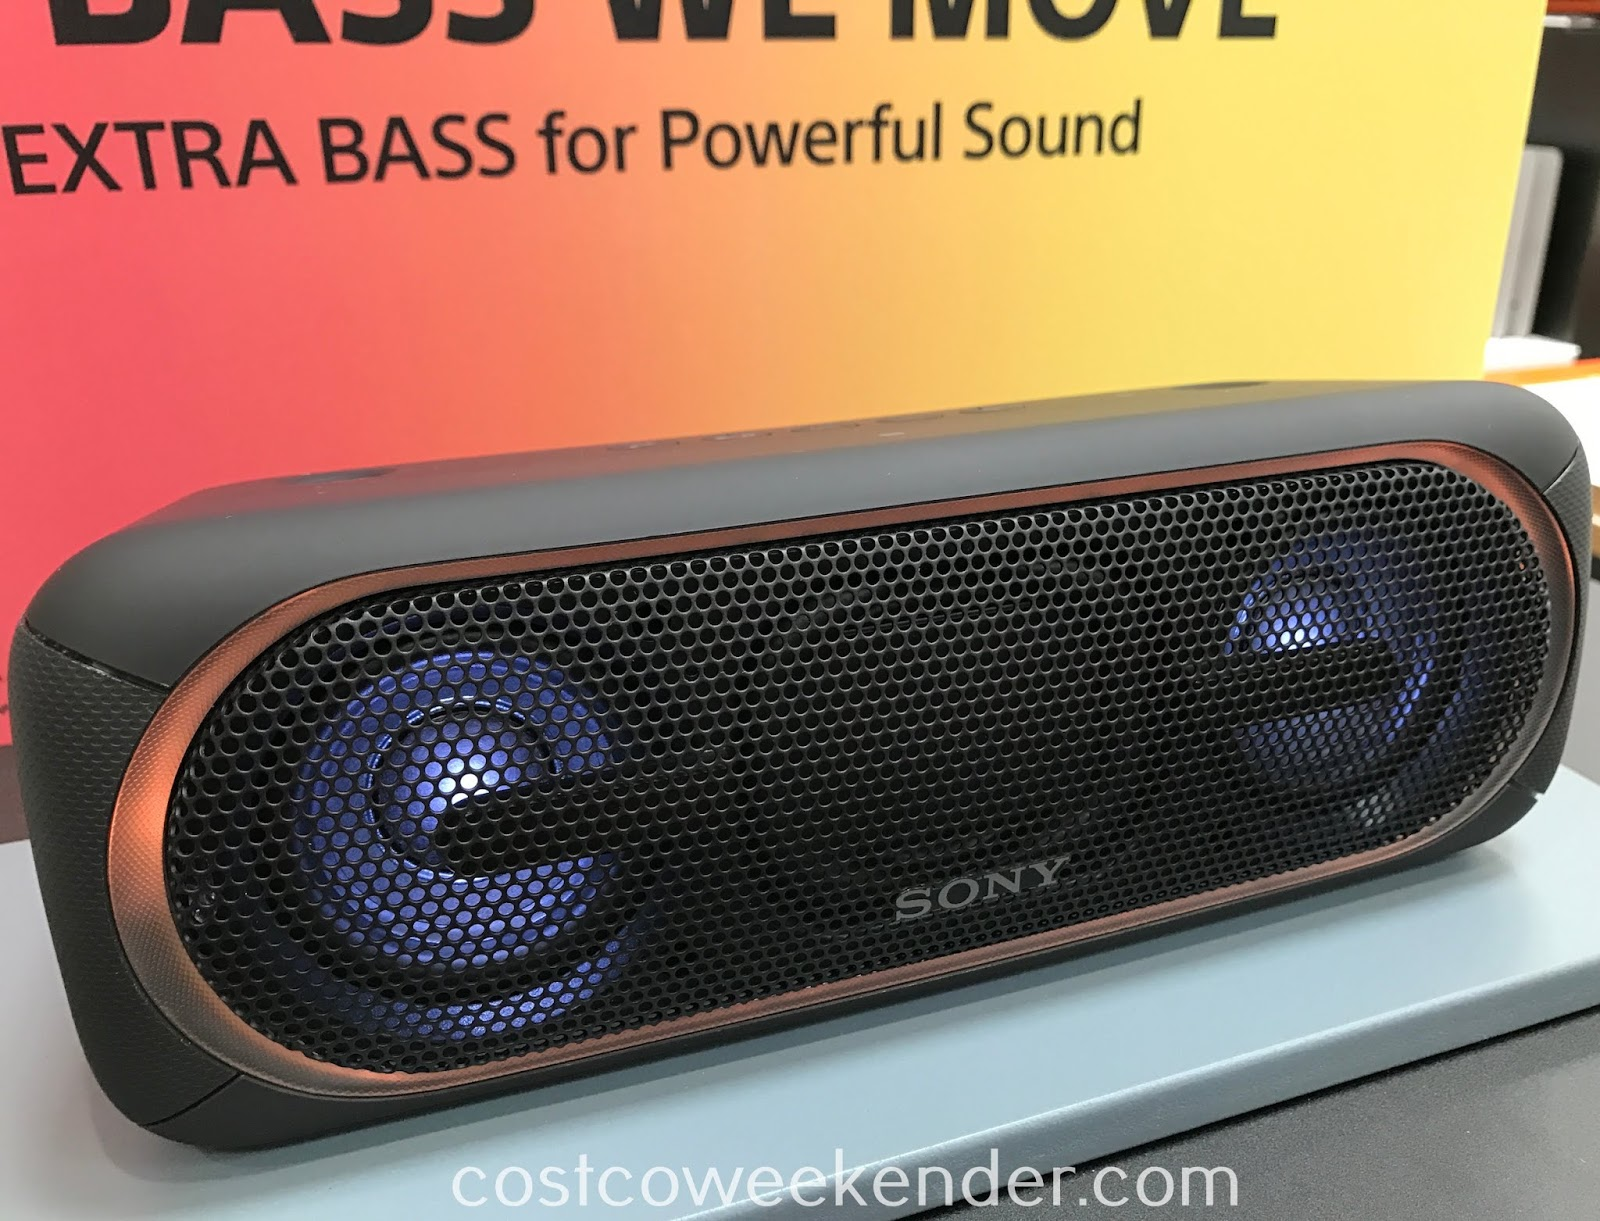 Listen to your favorite songs from your smartphone with the Sony SRS-XB40 Wireless Speaker